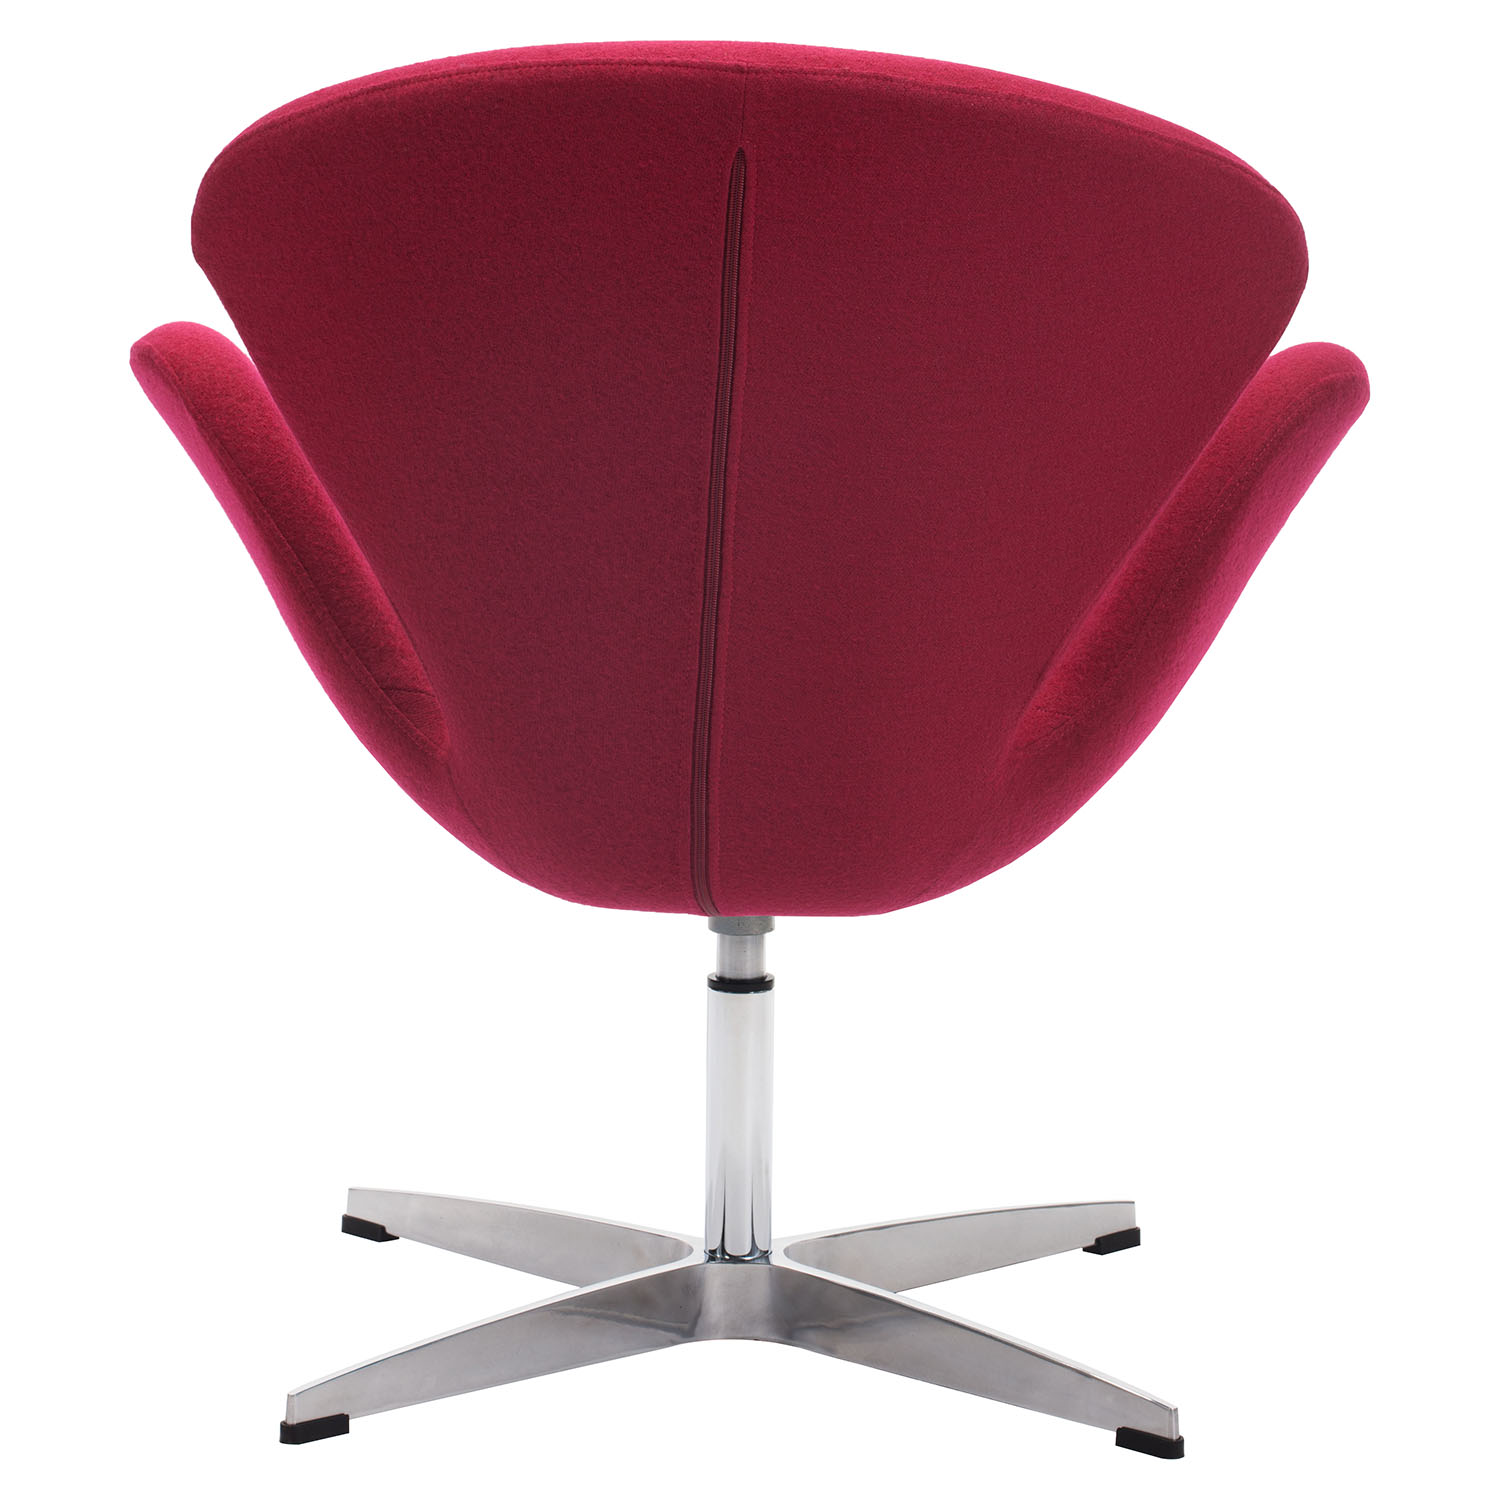 Pori Arm Chair - Carnelian Red - ZM-500309